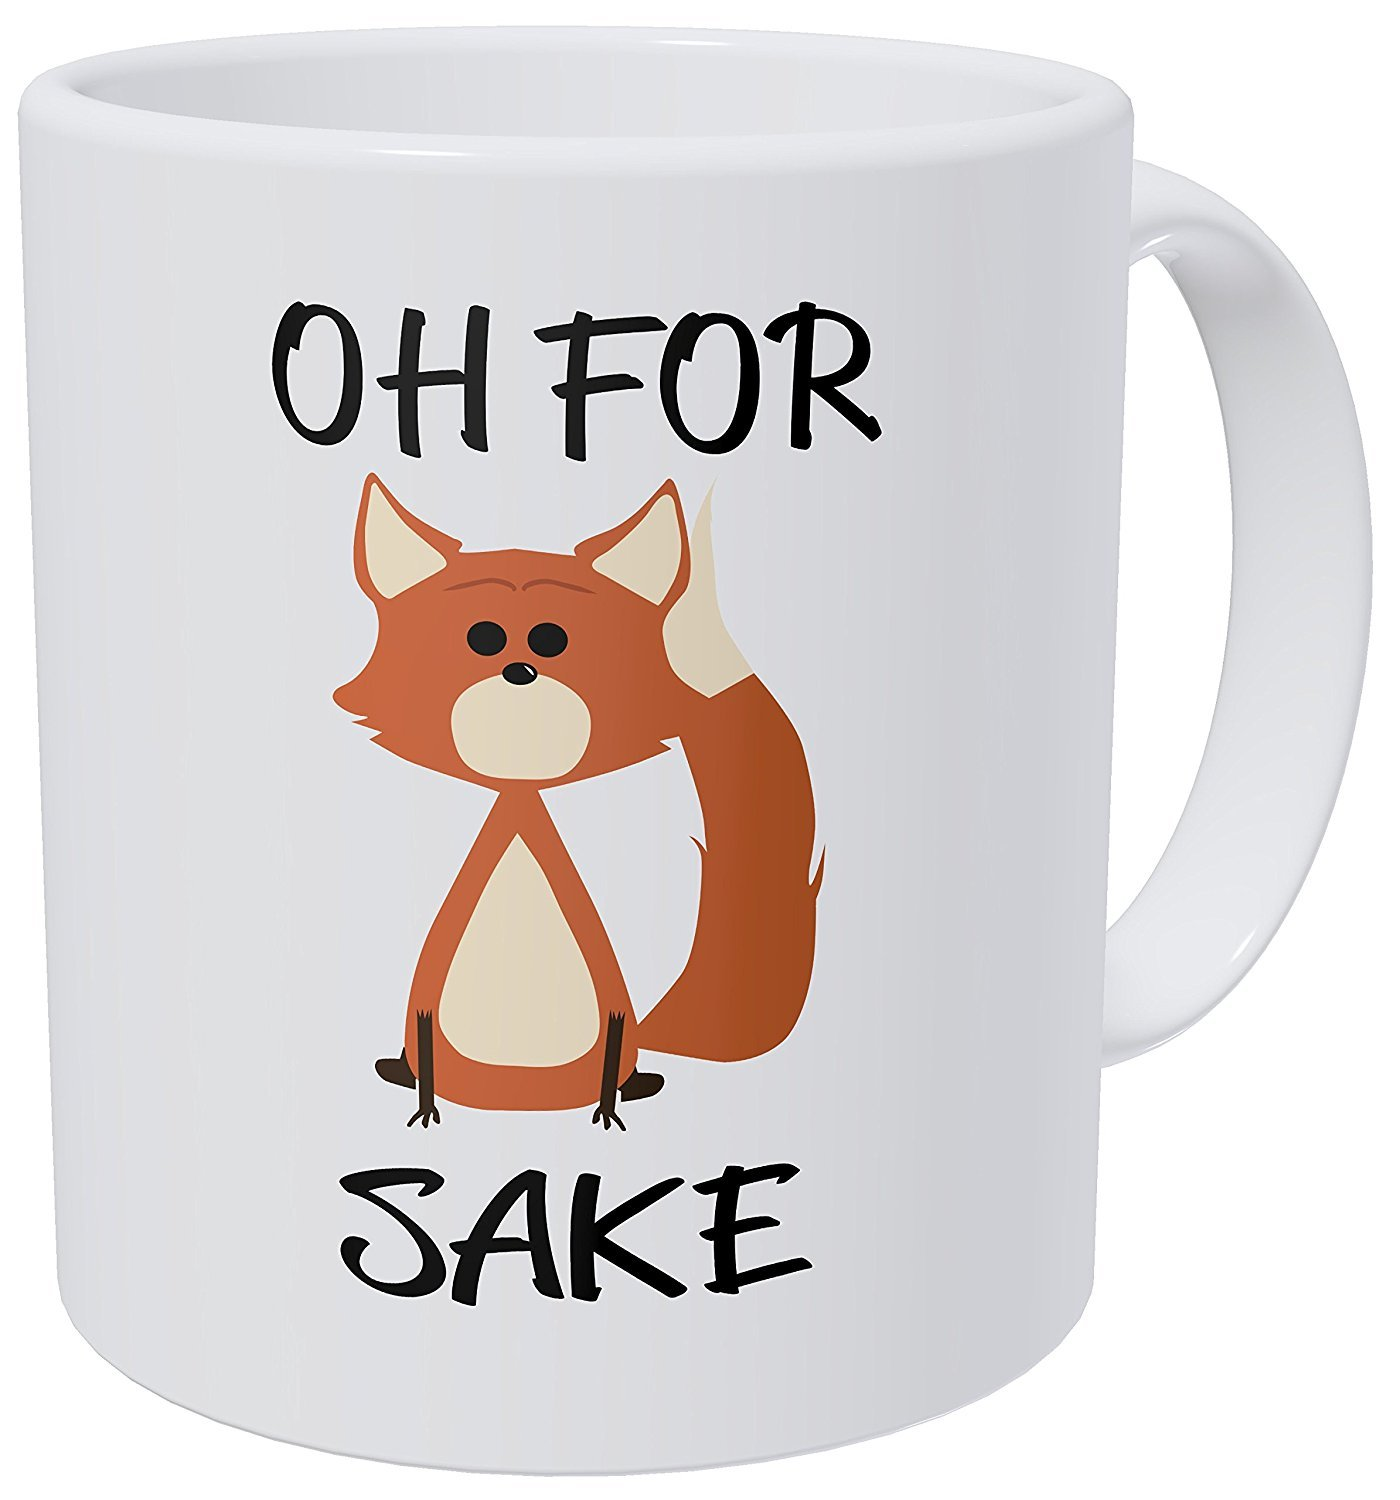 Oh For Fox Sake, Funny Coffee Mug, Birthday Gift For Friend, Day Drinking Coffee Mug, Gift For Him